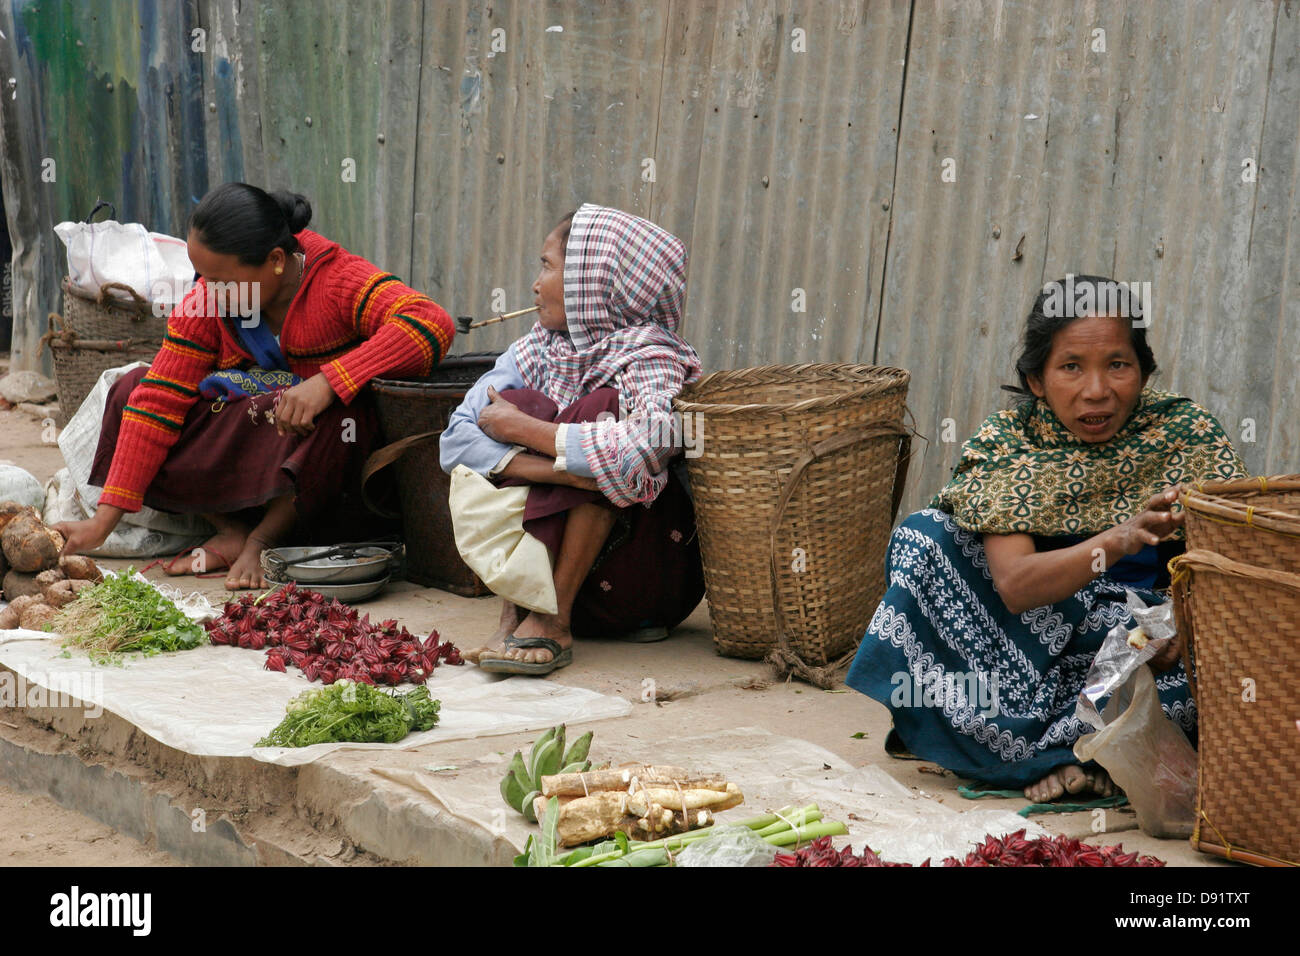 Tribal women selling vegetables and smoking traditional tobacco pipe Rangamati market Chittagong Hill Tracts Bangladesh  sc 1 st  Alamy & Tribal women selling vegetables and smoking traditional tobacco pipe ...